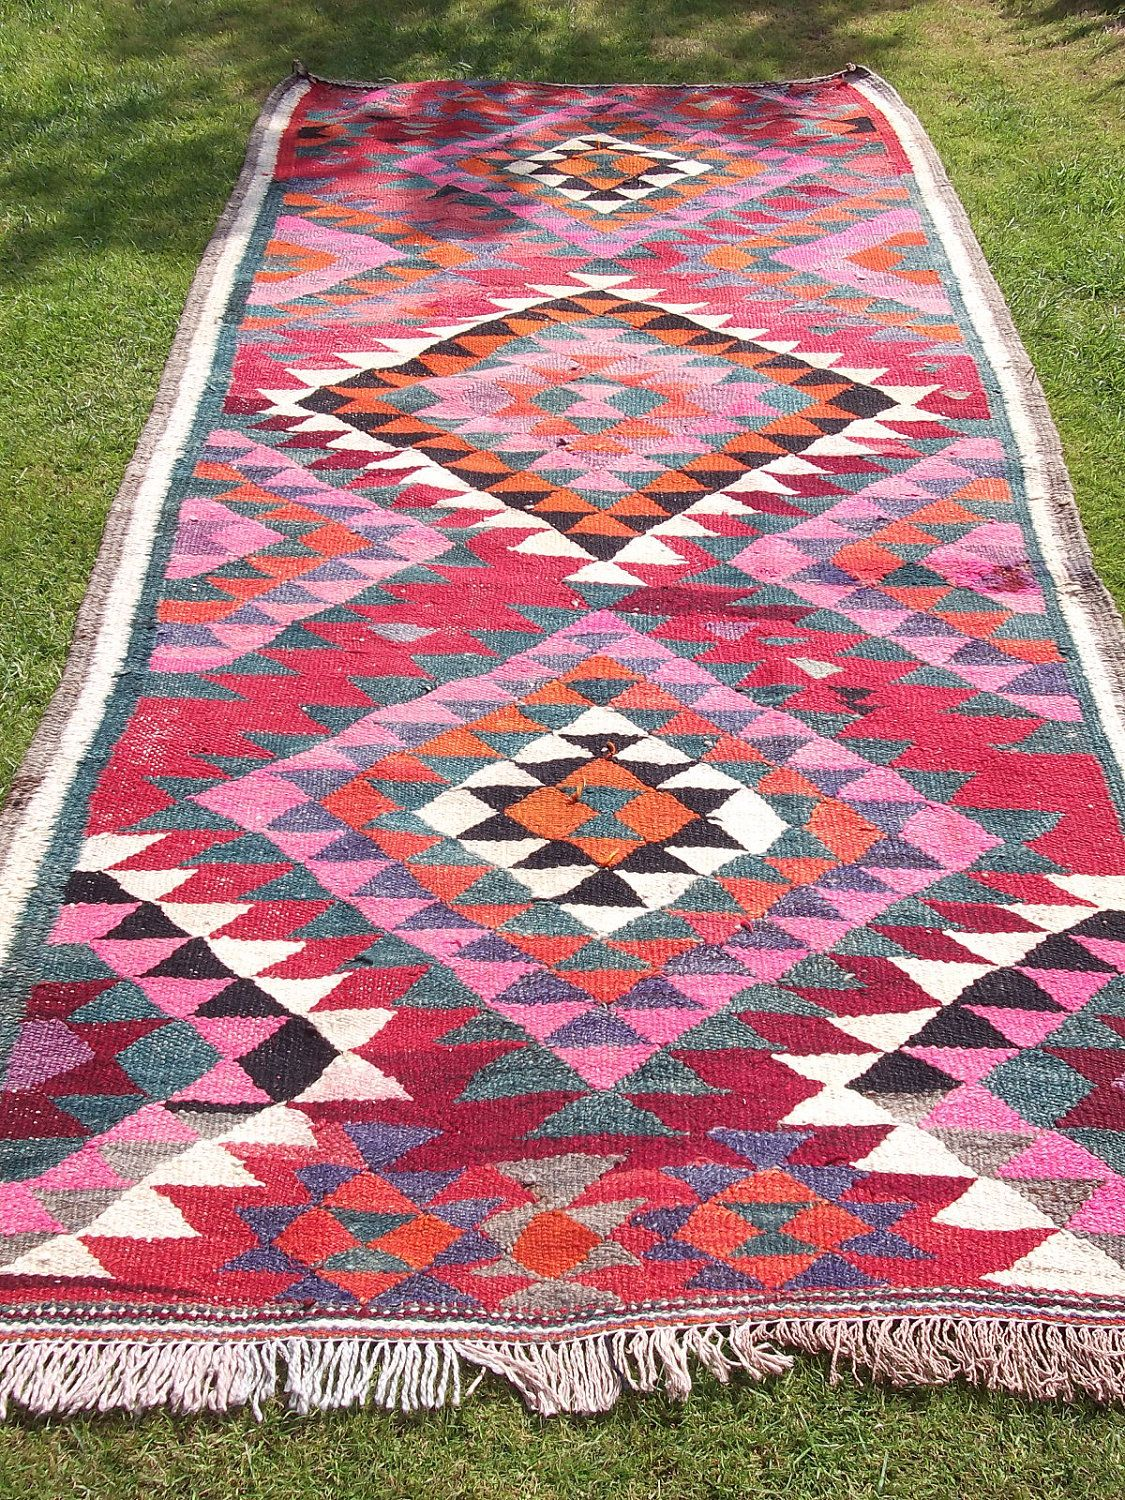 Vibrant Woven Persian Kilim 8 Ft X 4 Bright Wool Rug